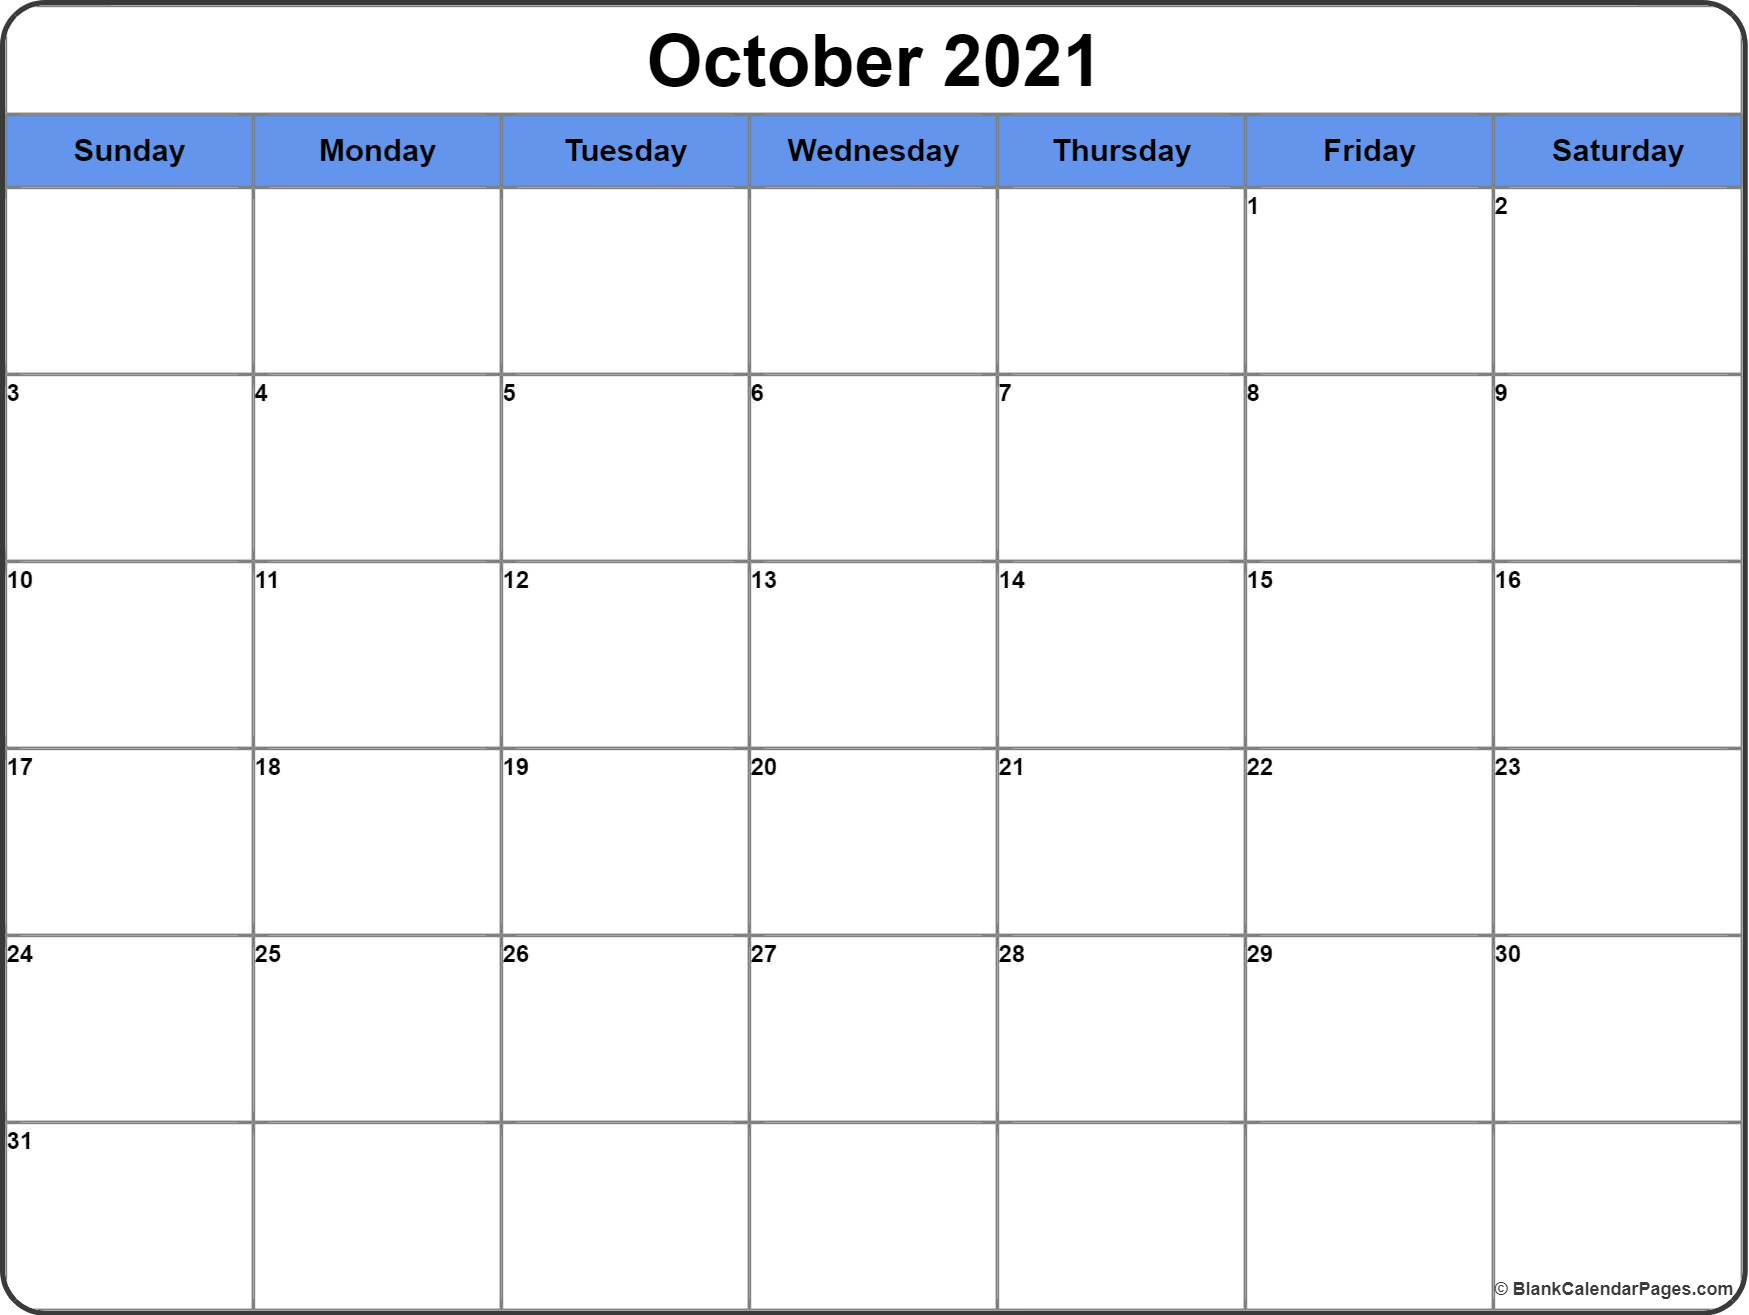 October 2018 calendar | 51+ calendar templates of 2018